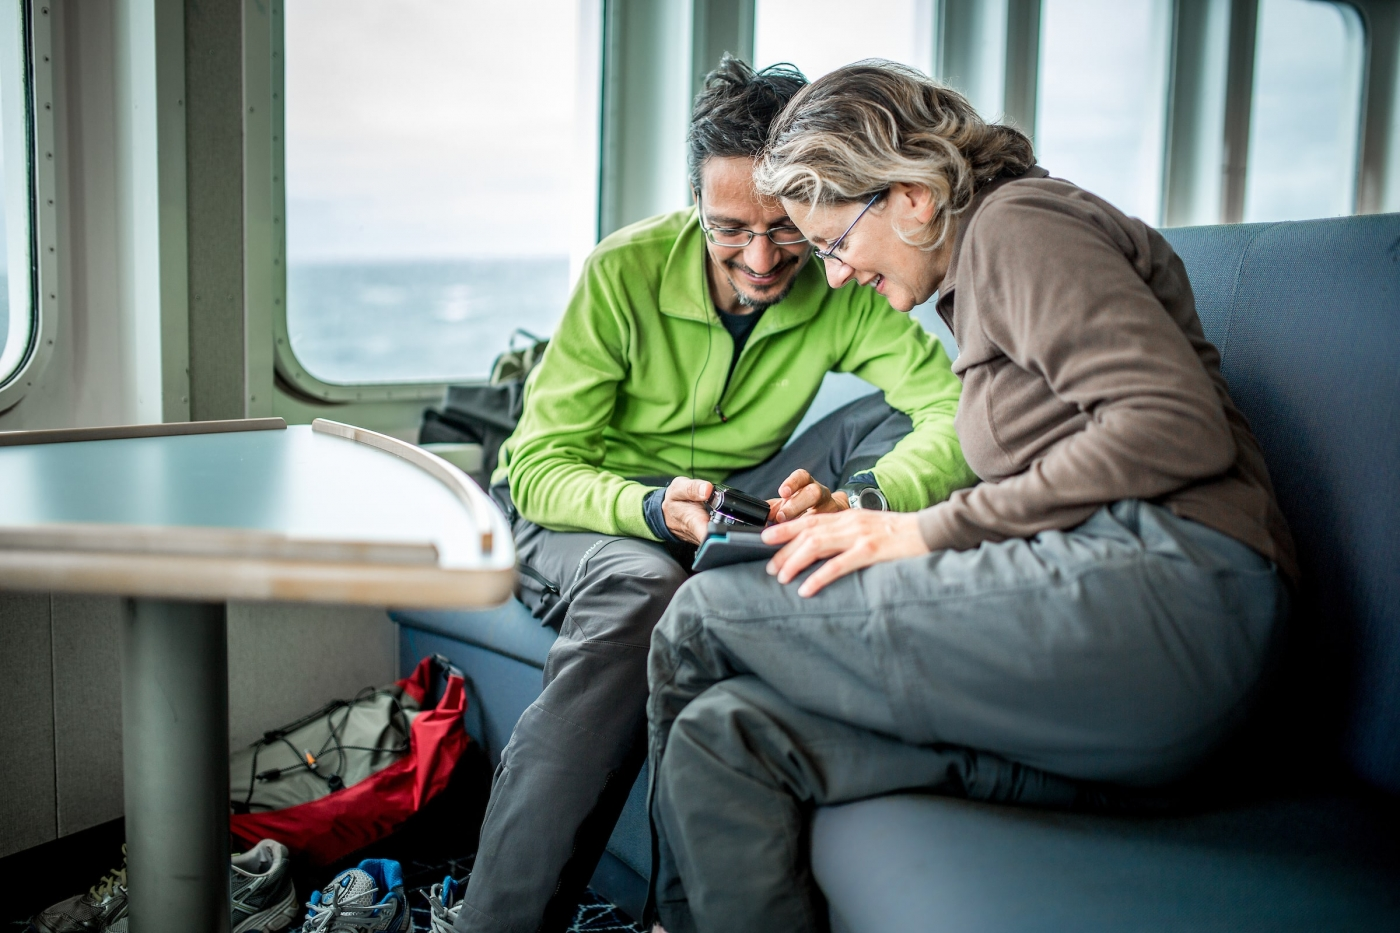 Two guests in the lounge on Sarfaq Ittuk in Greenland. Photo by Mads Pihl - Visit Greenland